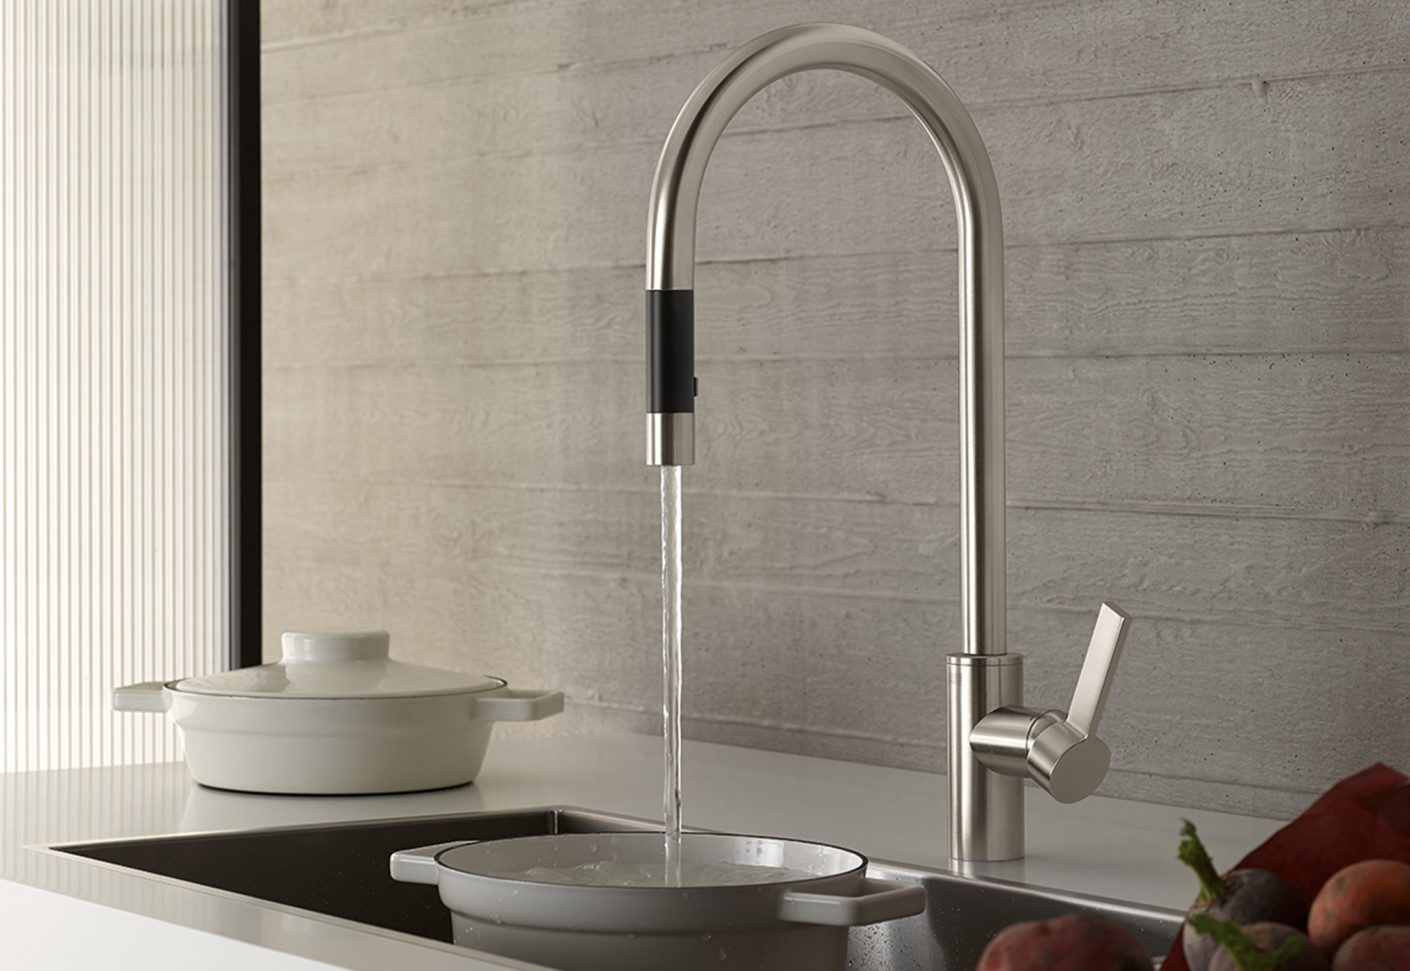 vaia dornbracht magazine series guide azure product by faucet